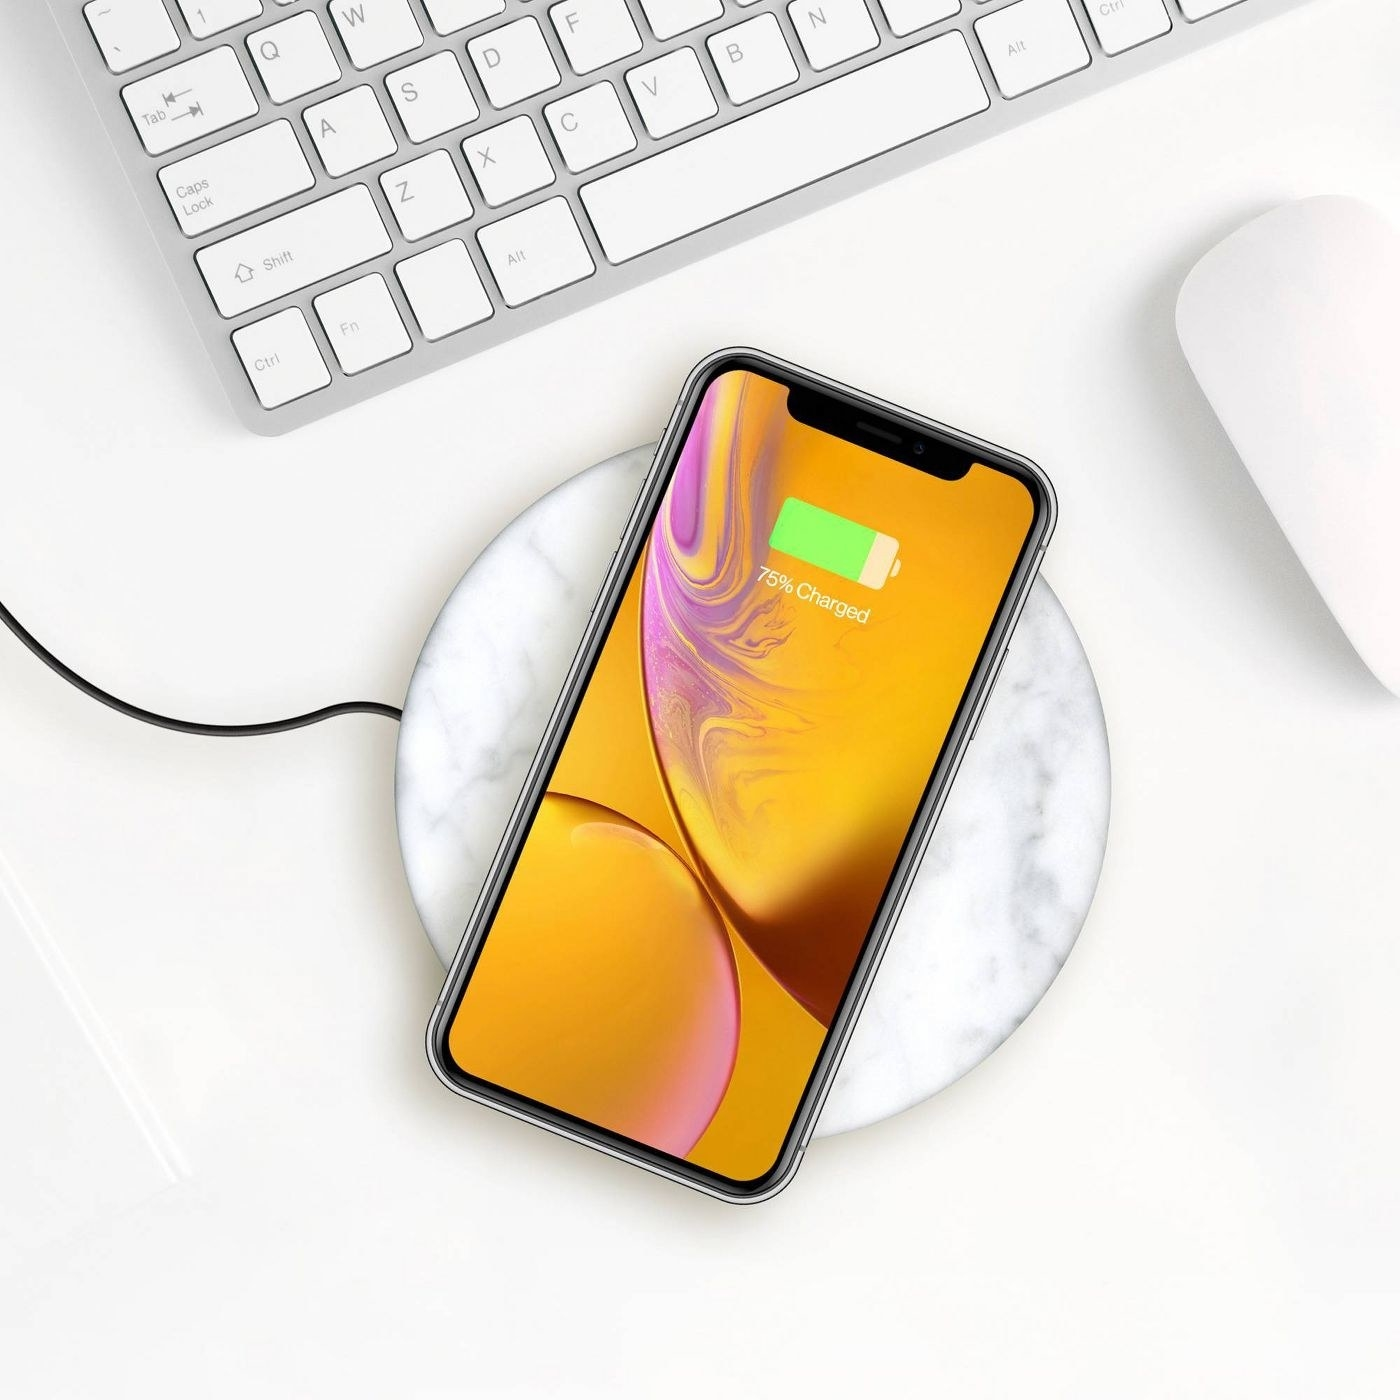 marble wireless phone chargers with a phone on top